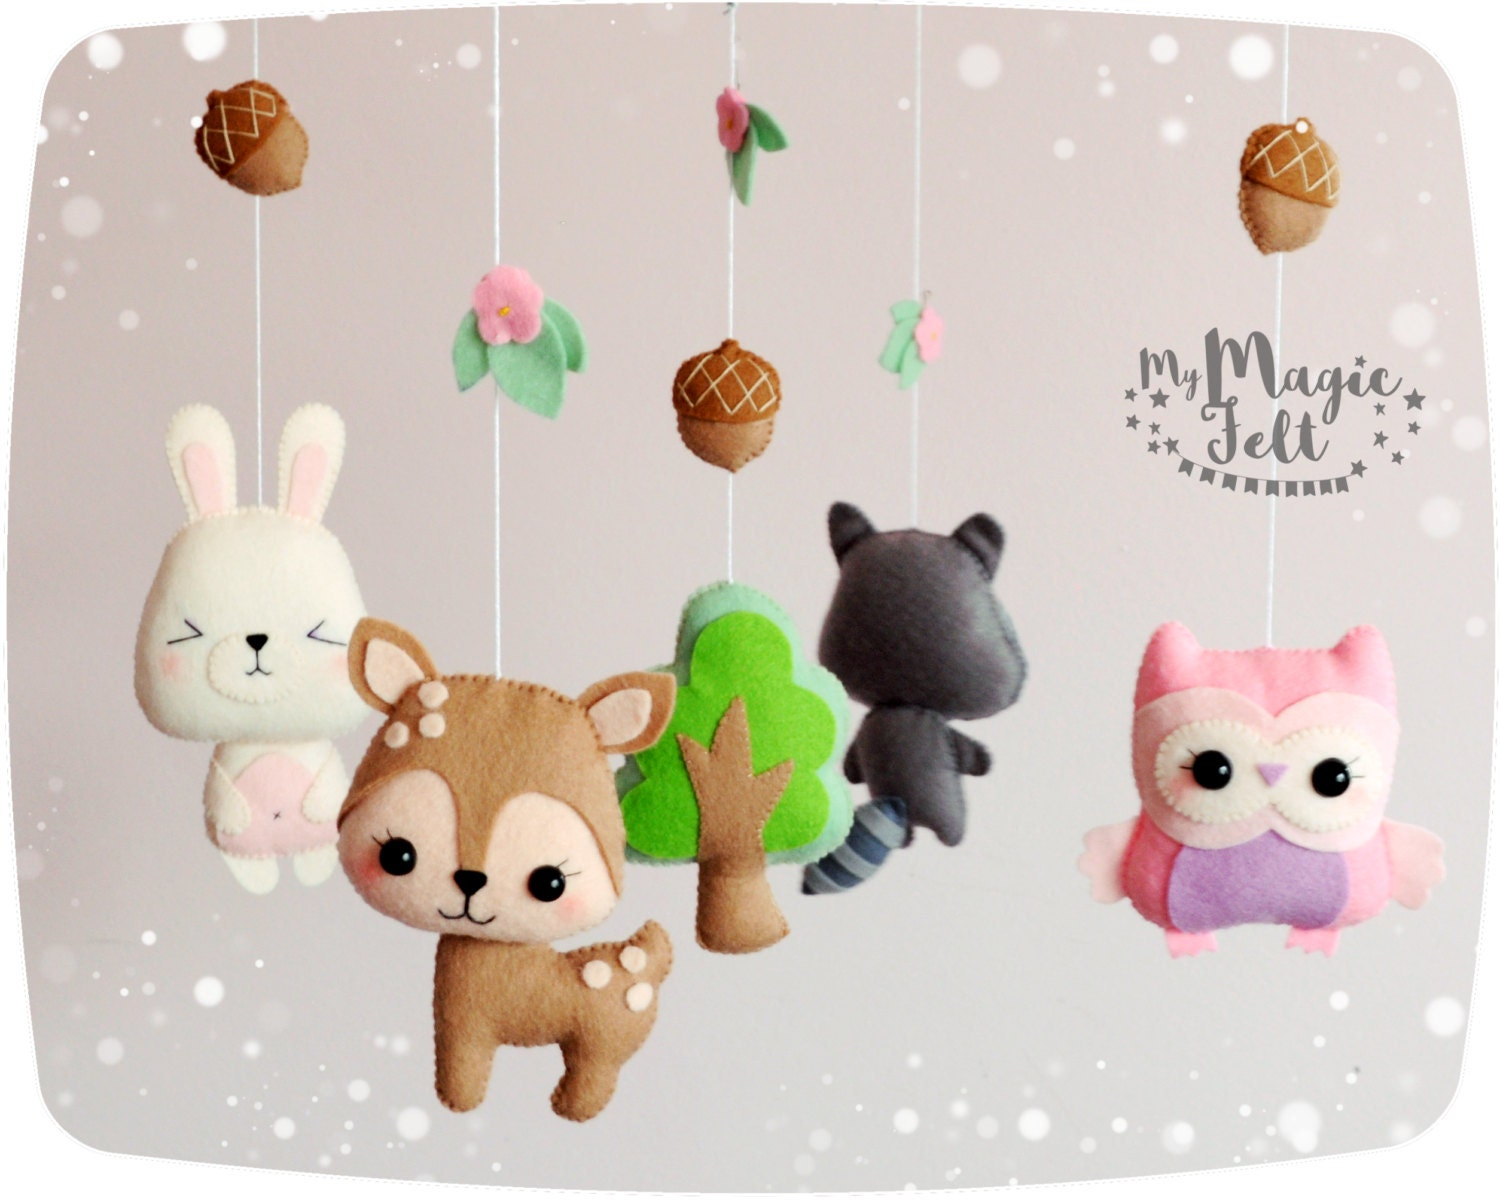 Baby mobile forest nursery mobile woodland animals baby mobile for Woodland animals nursery mobile